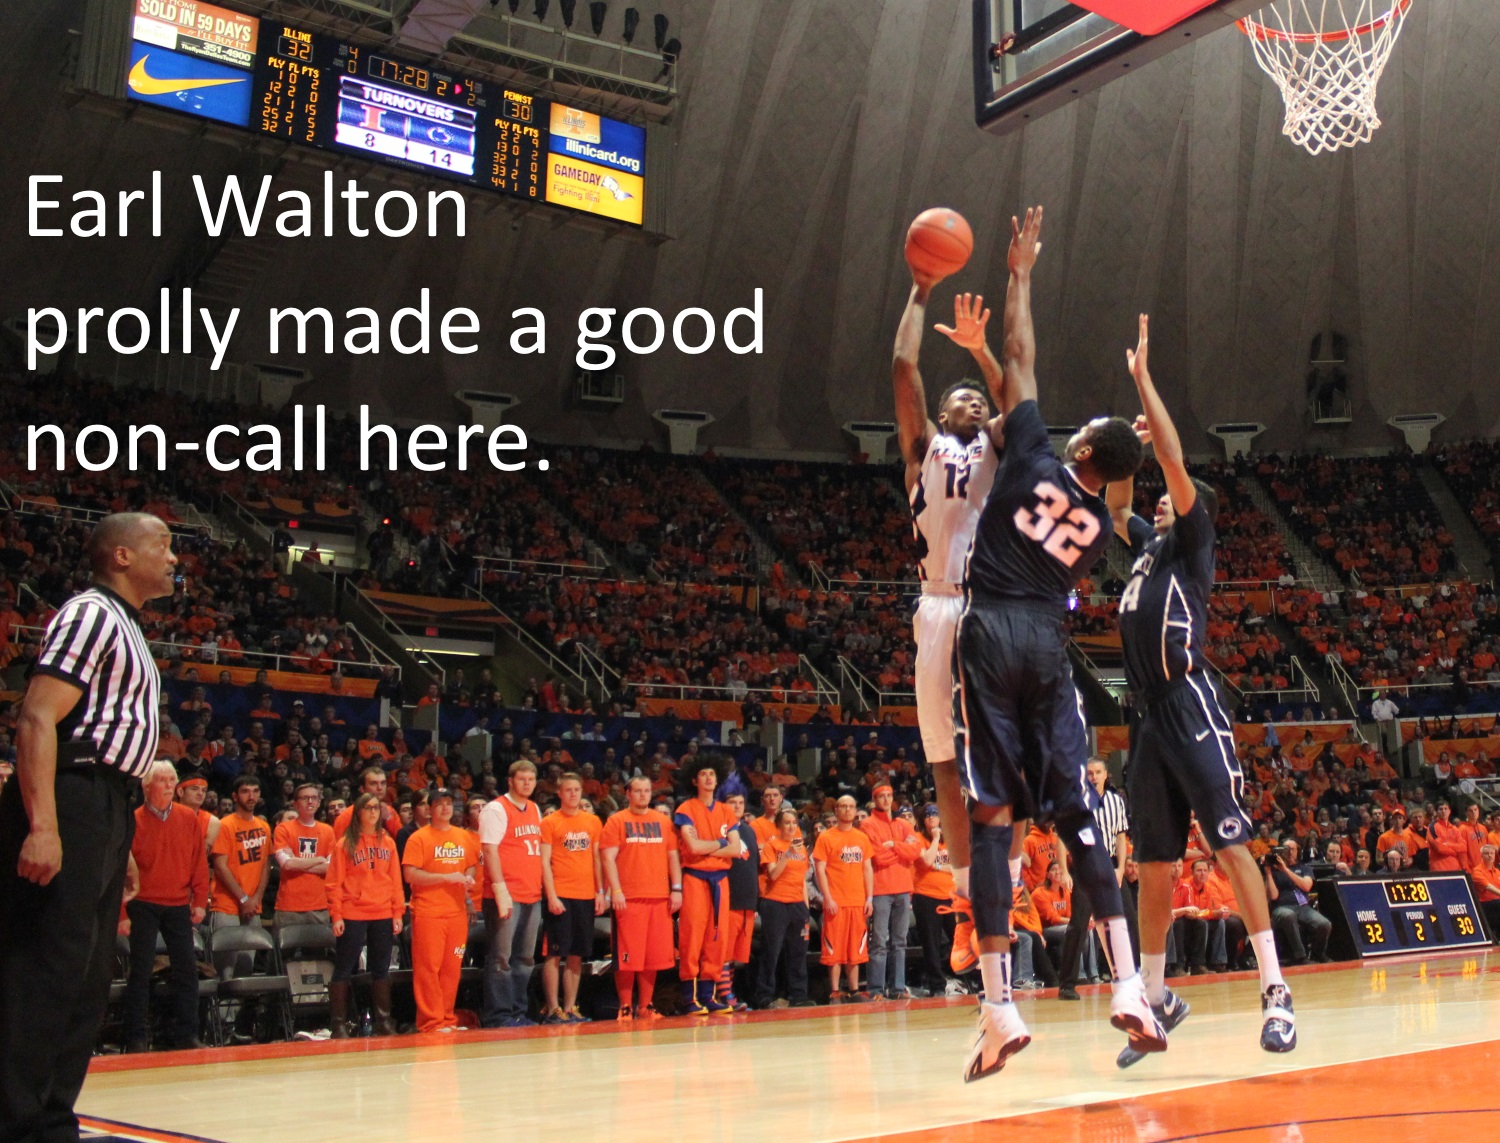 Earl Walton made a good non call